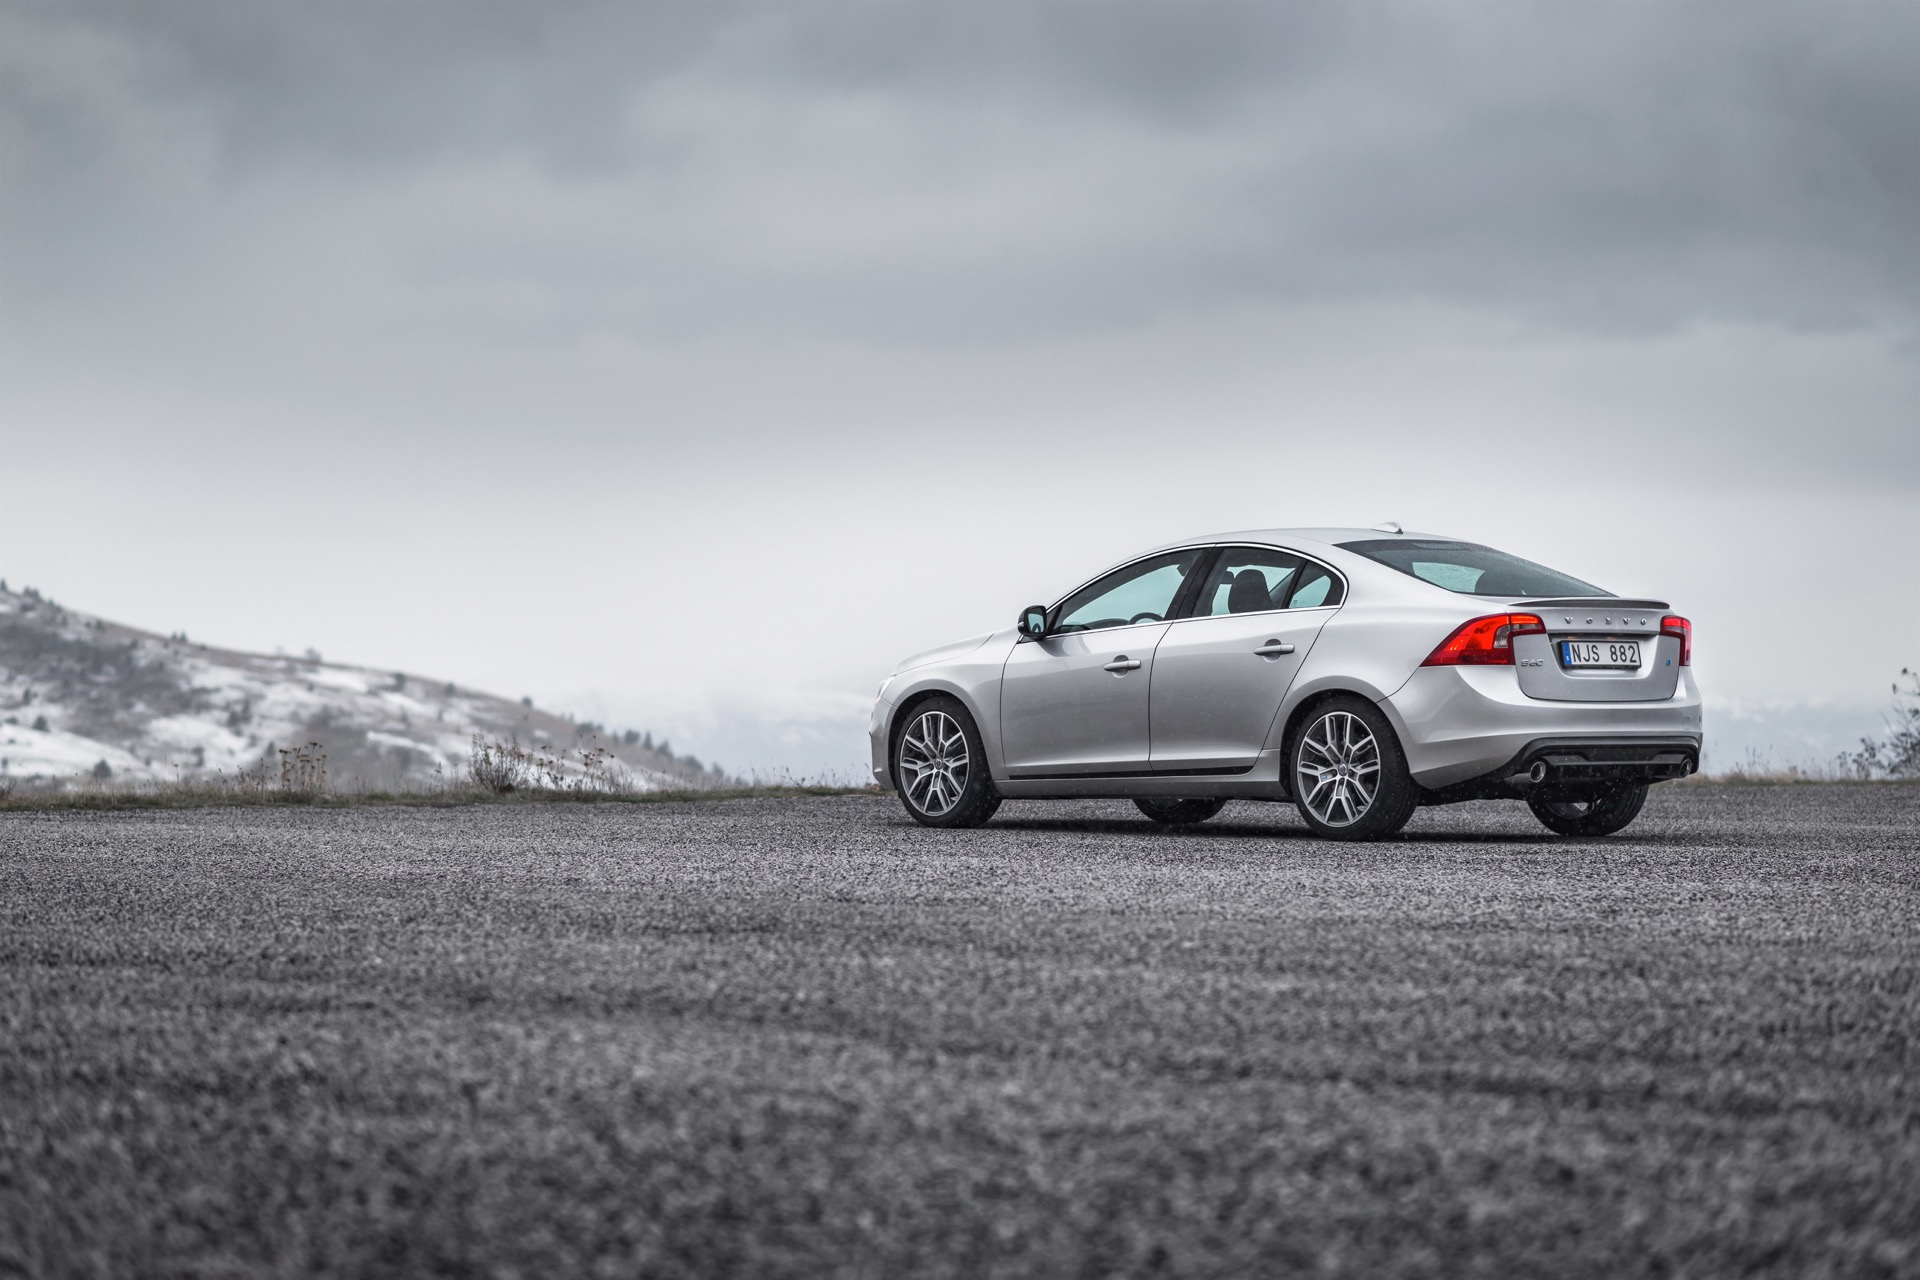 Volvo S60 With Polestar Parts -  2016, 2017, 2017 S60, 2018, 2018 S60, Design, Exterior, Images, Polestar, S60, Technology, Volvo